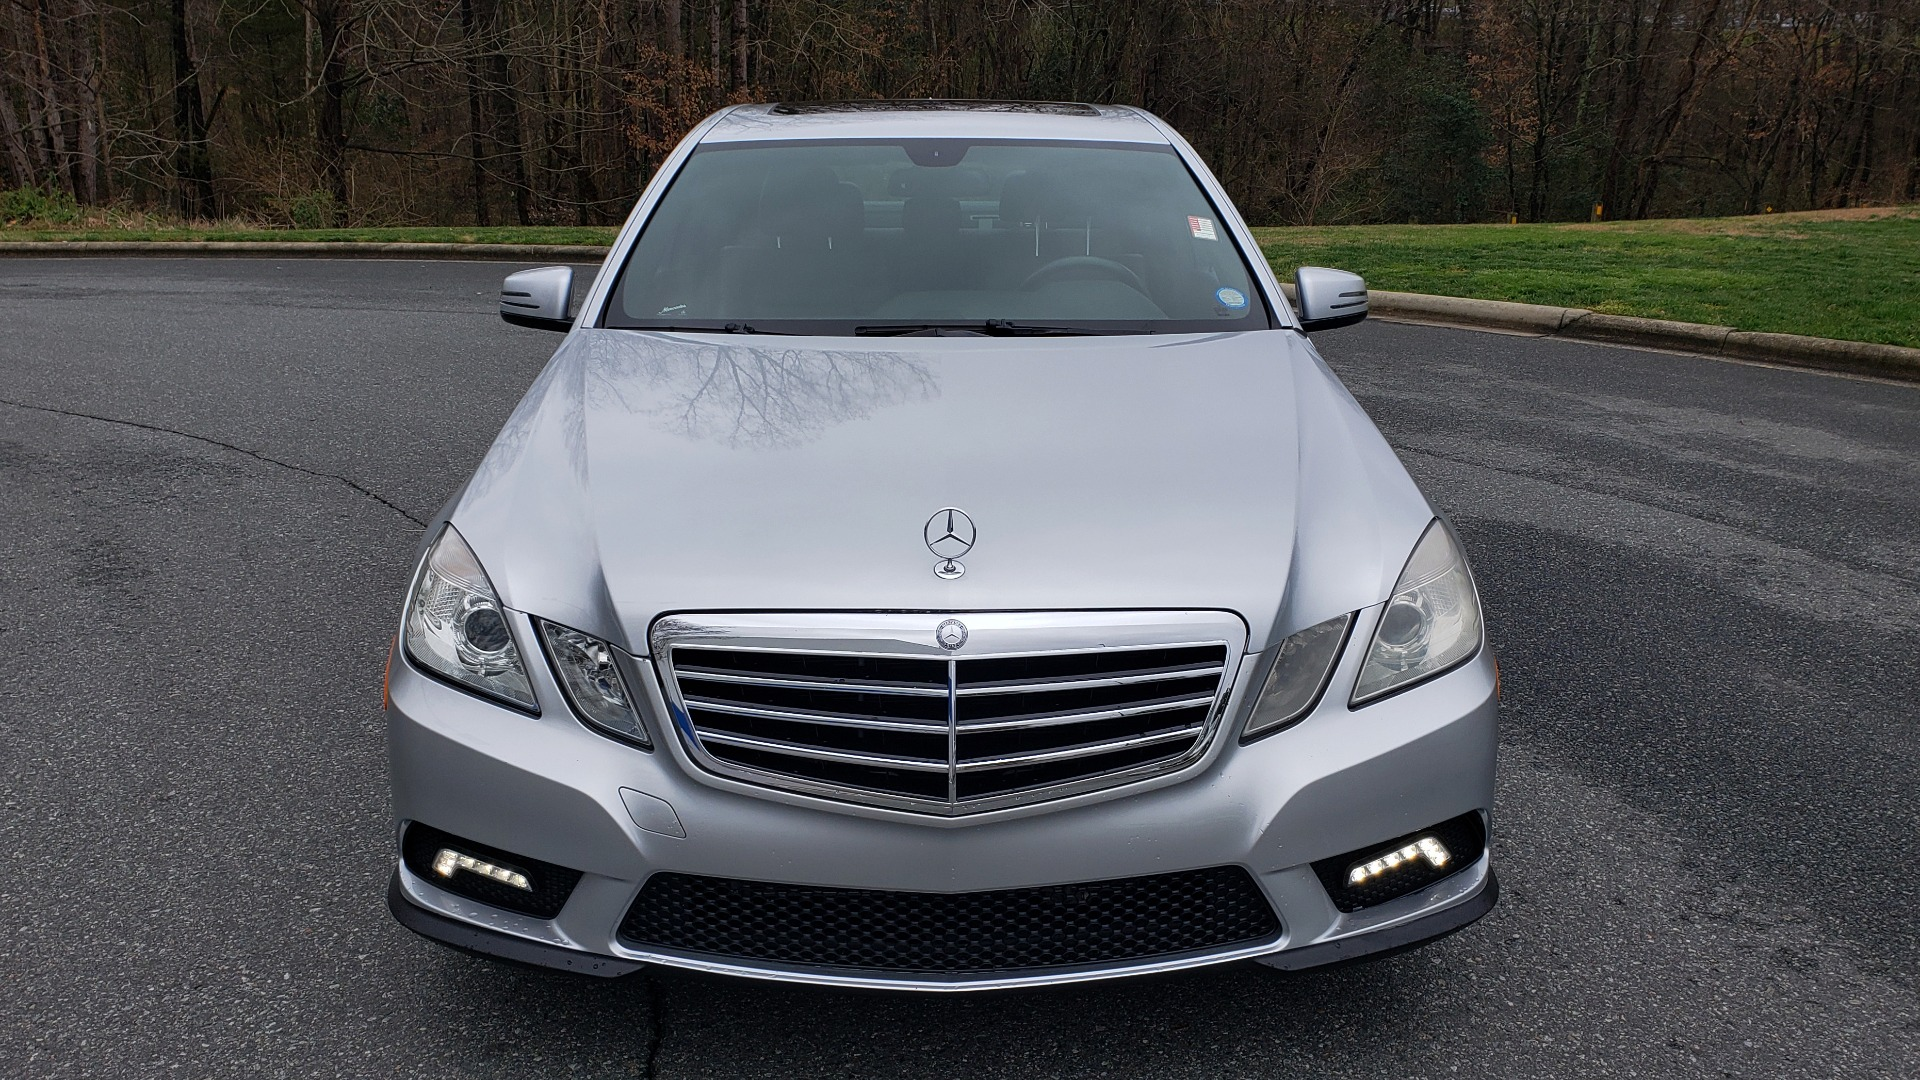 Used 2011 Mercedes-Benz E-CLASS E 350 PREMIUM / SUNROOF / NAV / HTD STS / REARVIEW for sale Sold at Formula Imports in Charlotte NC 28227 22